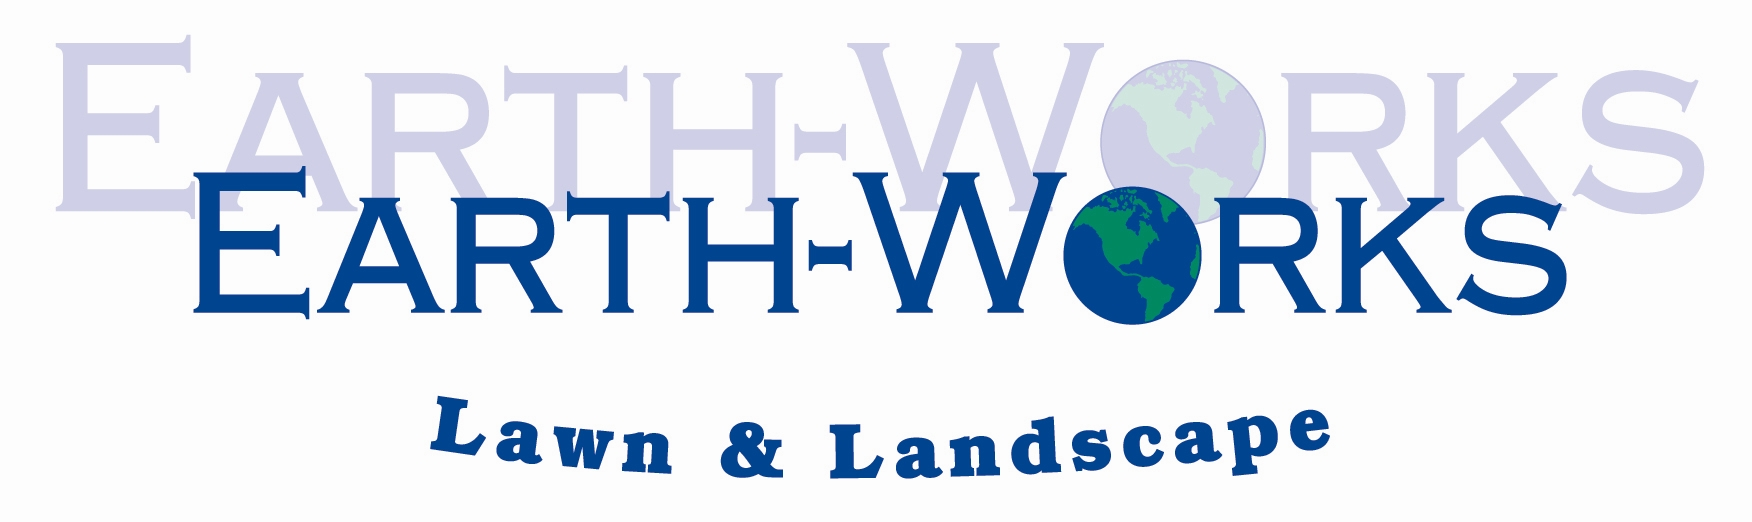 Earth Works Lawn & Landscape